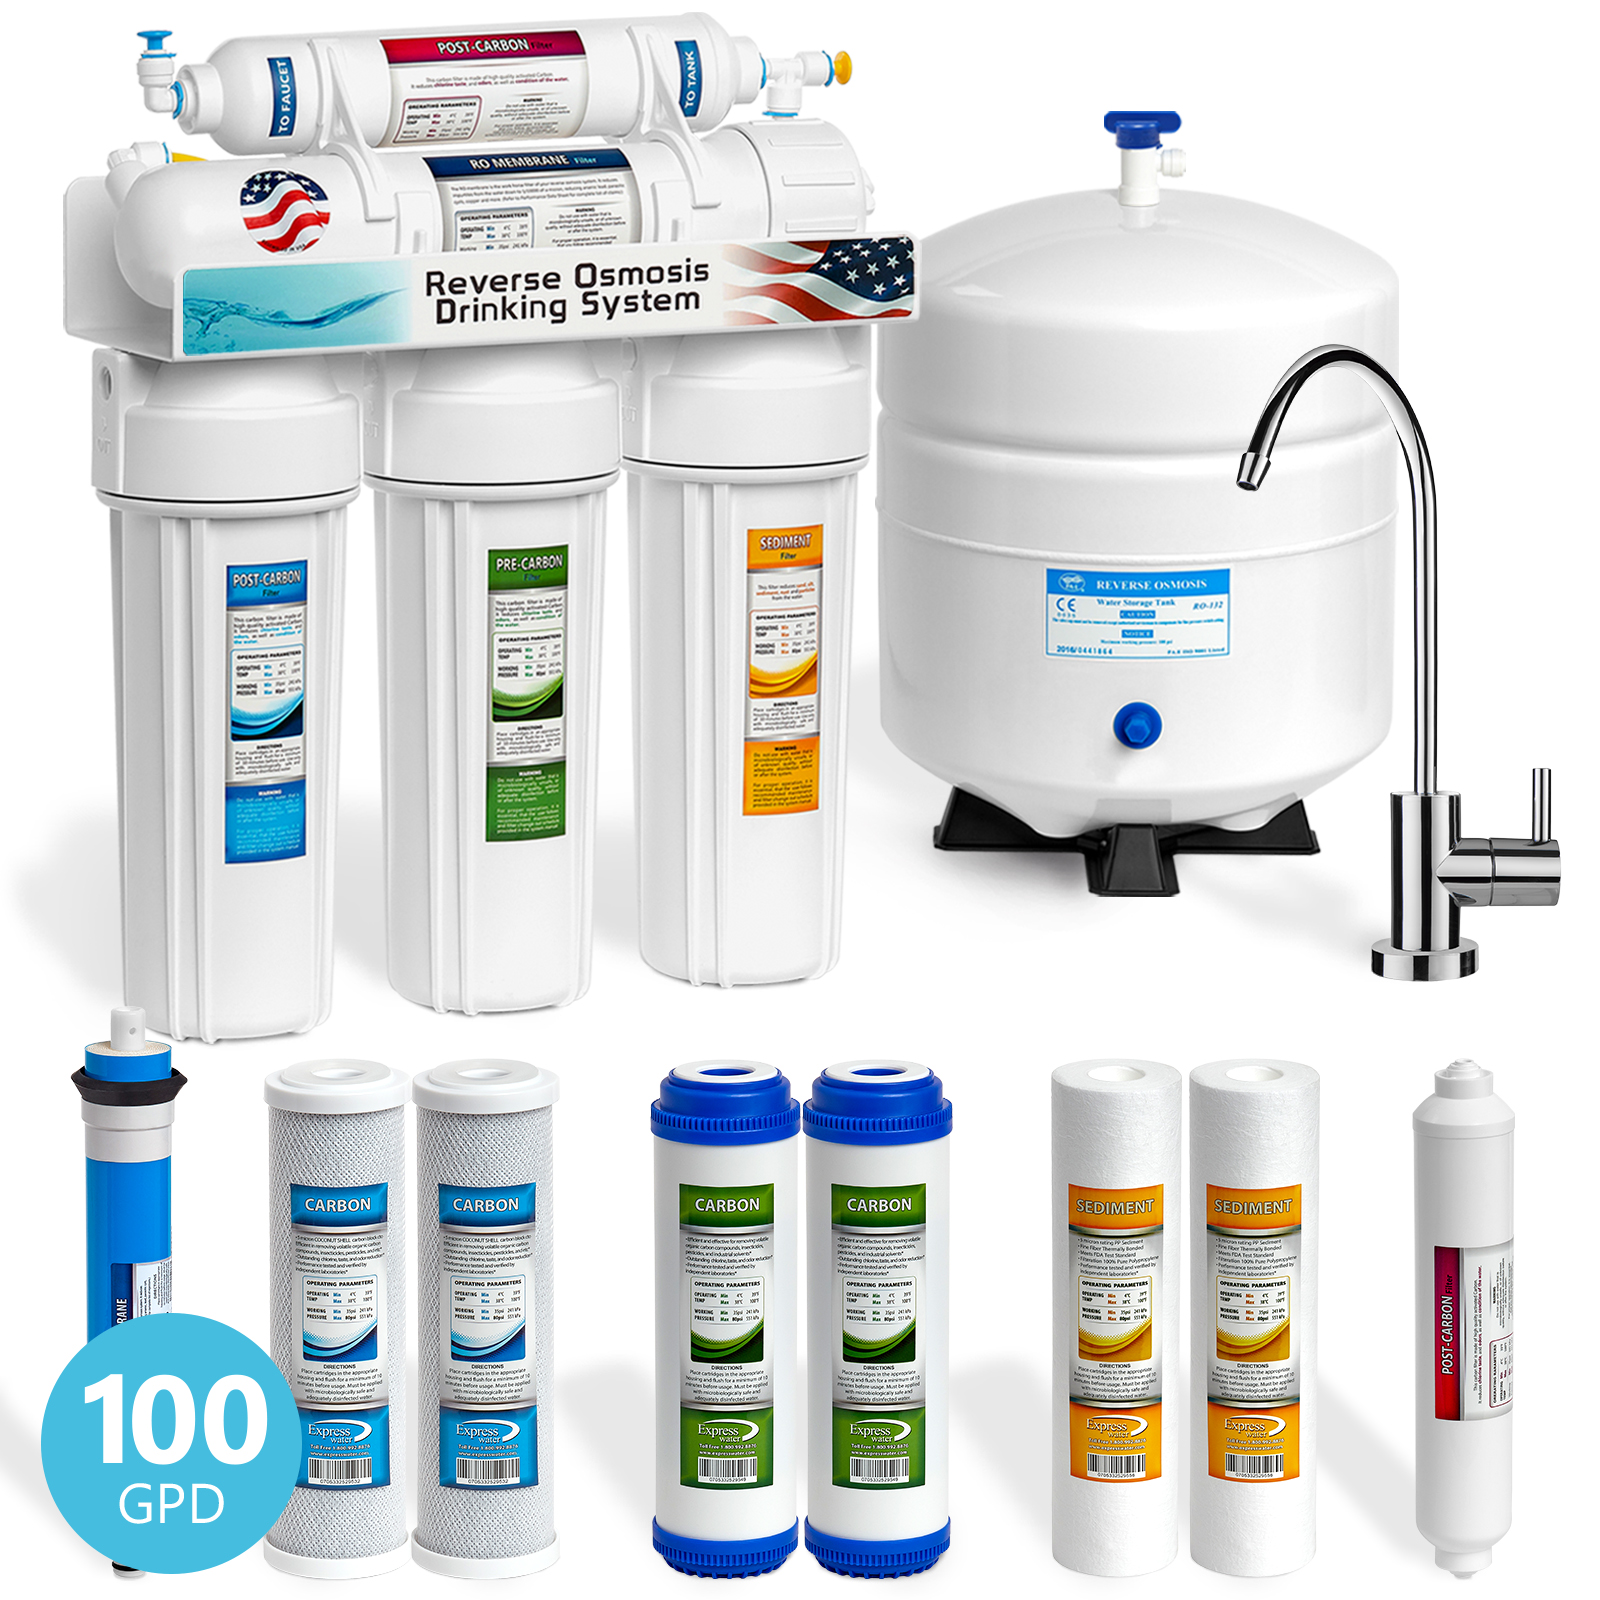 Express Water 5 Stage Home Drinking Reverse Osmosis Water Filtration System 100 GPD RO Membrane - Extra Filters Set - Modern Chrome Faucet - Ultra Safe Residential Under Sink Water Purification System